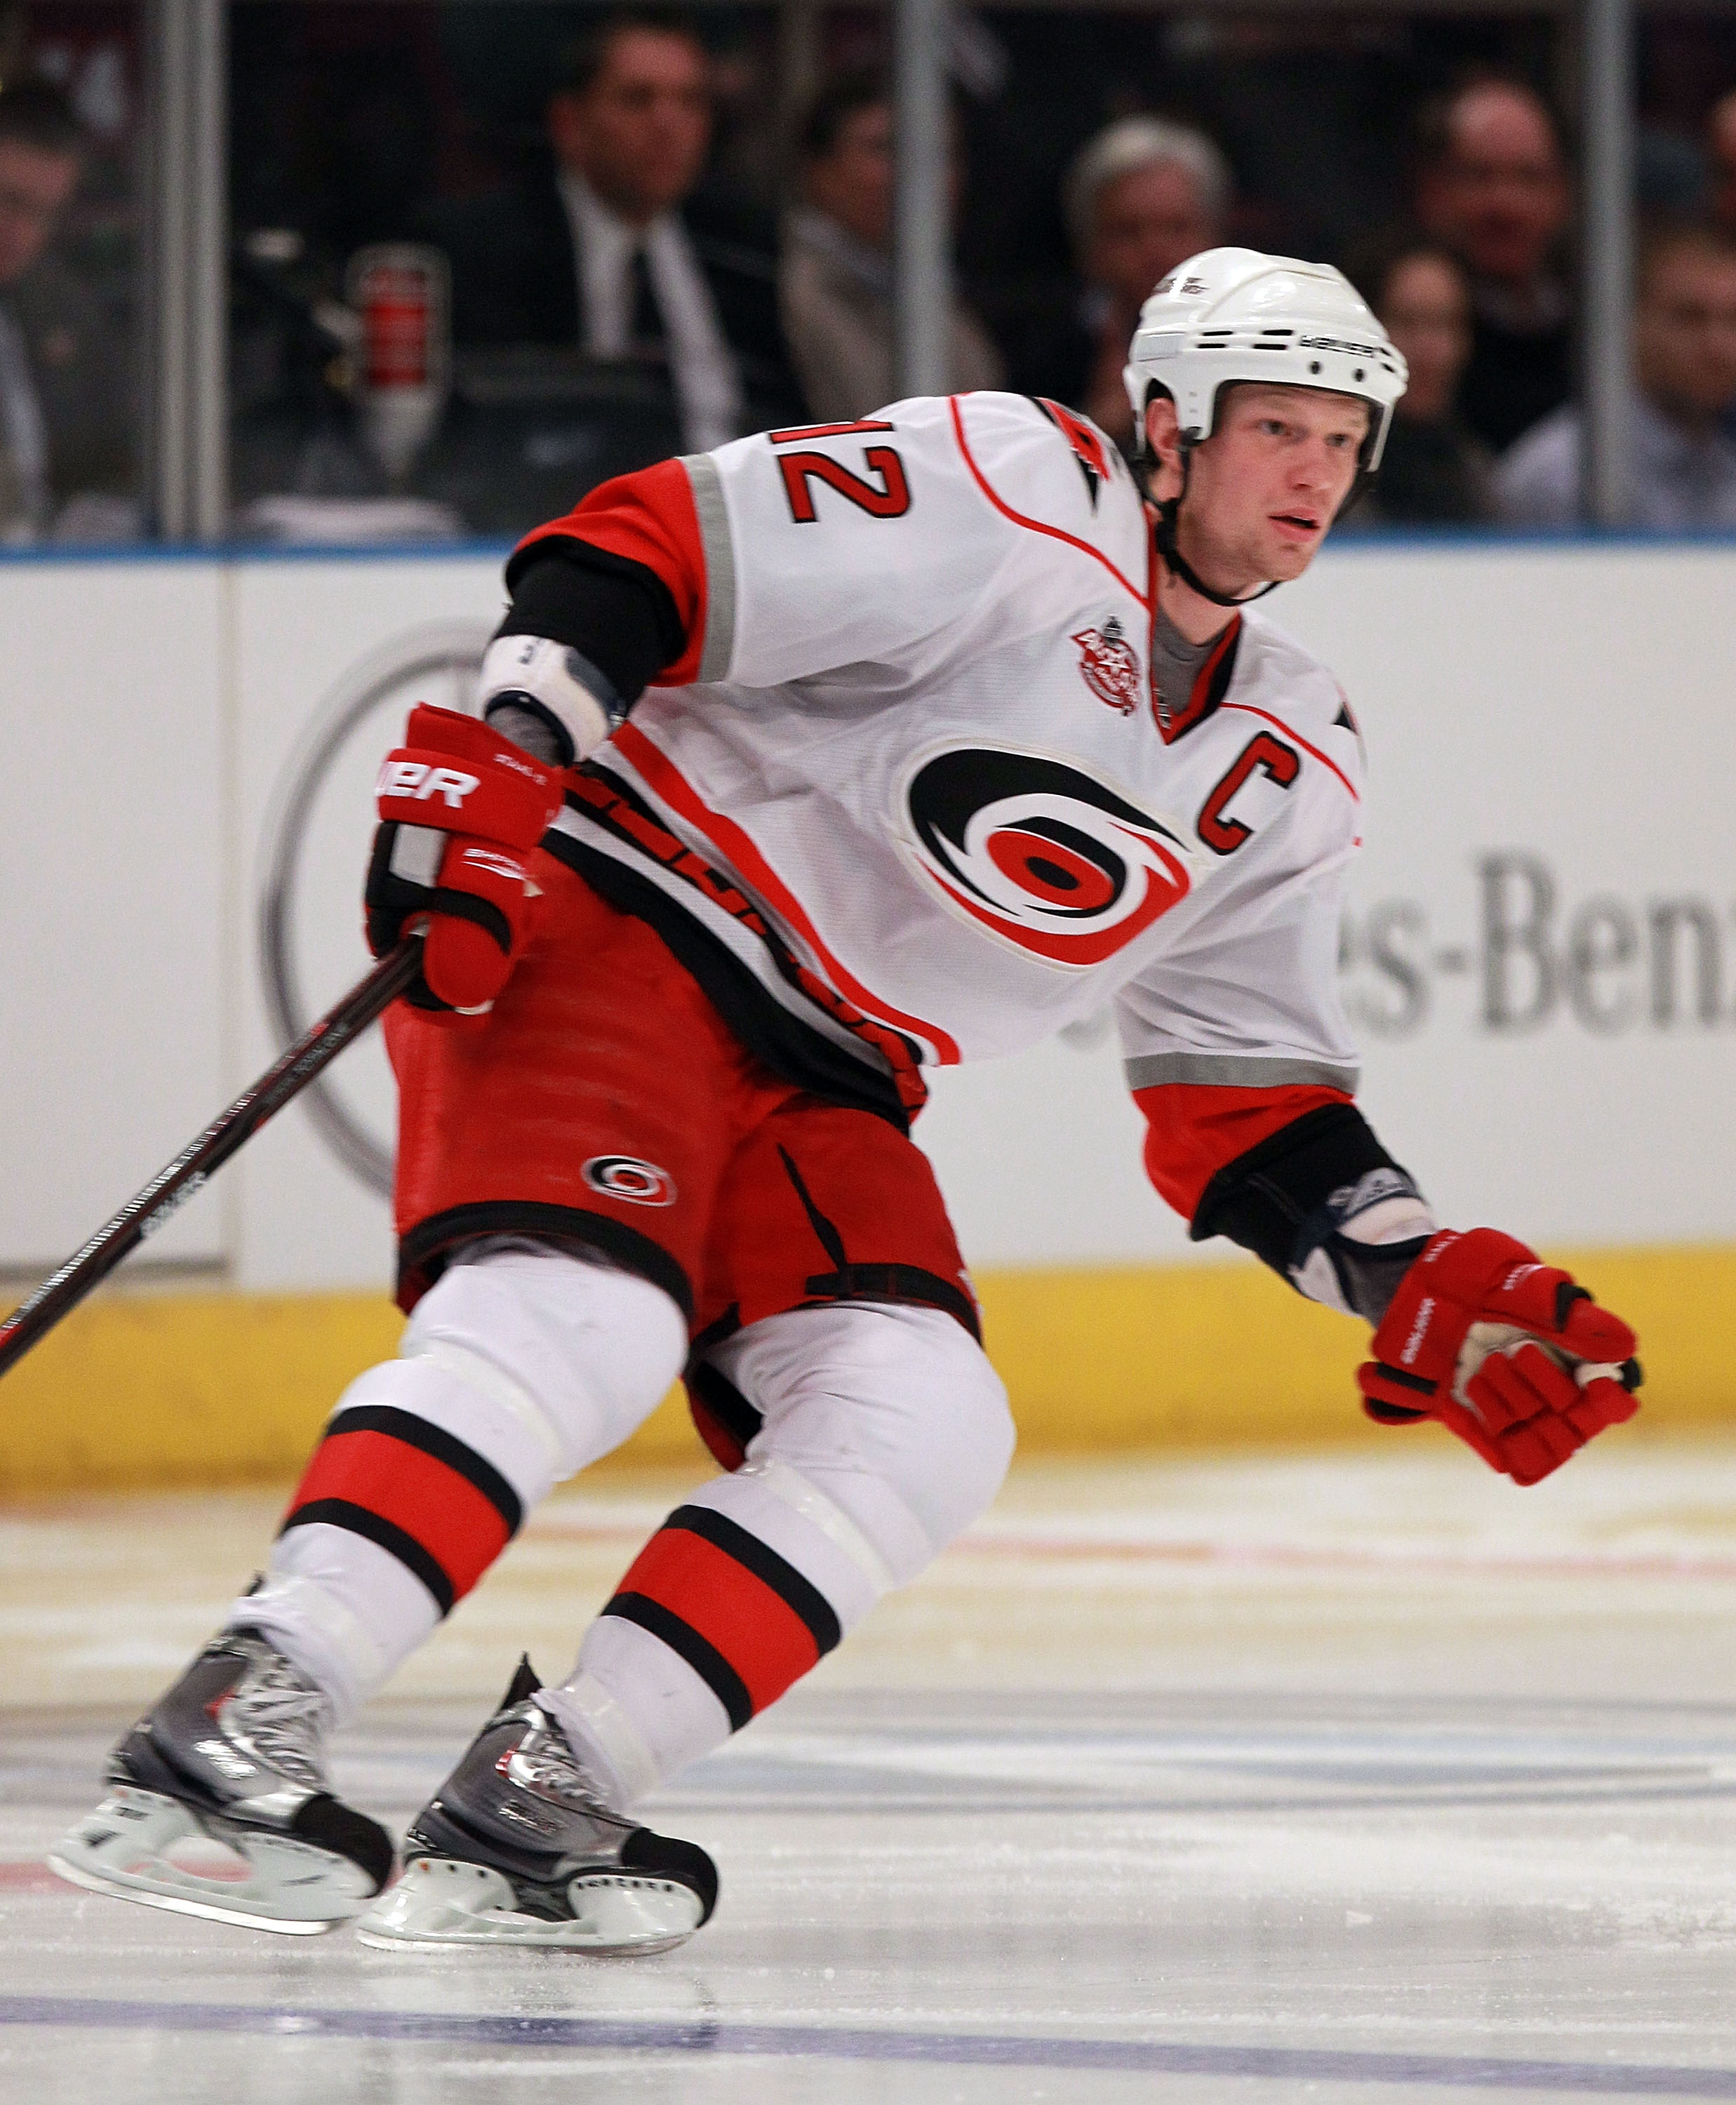 NEW YORK, NY - JANUARY 05:  Eric Staal #12 of the Carolina Hurricanes skates against the New York Rangers at Madison Square Garden on January 5, 2011 in New York City. The Rangers defeated the Hurricanes 2-1 in overtime.  (Photo by Bruce Bennett/Getty Ima